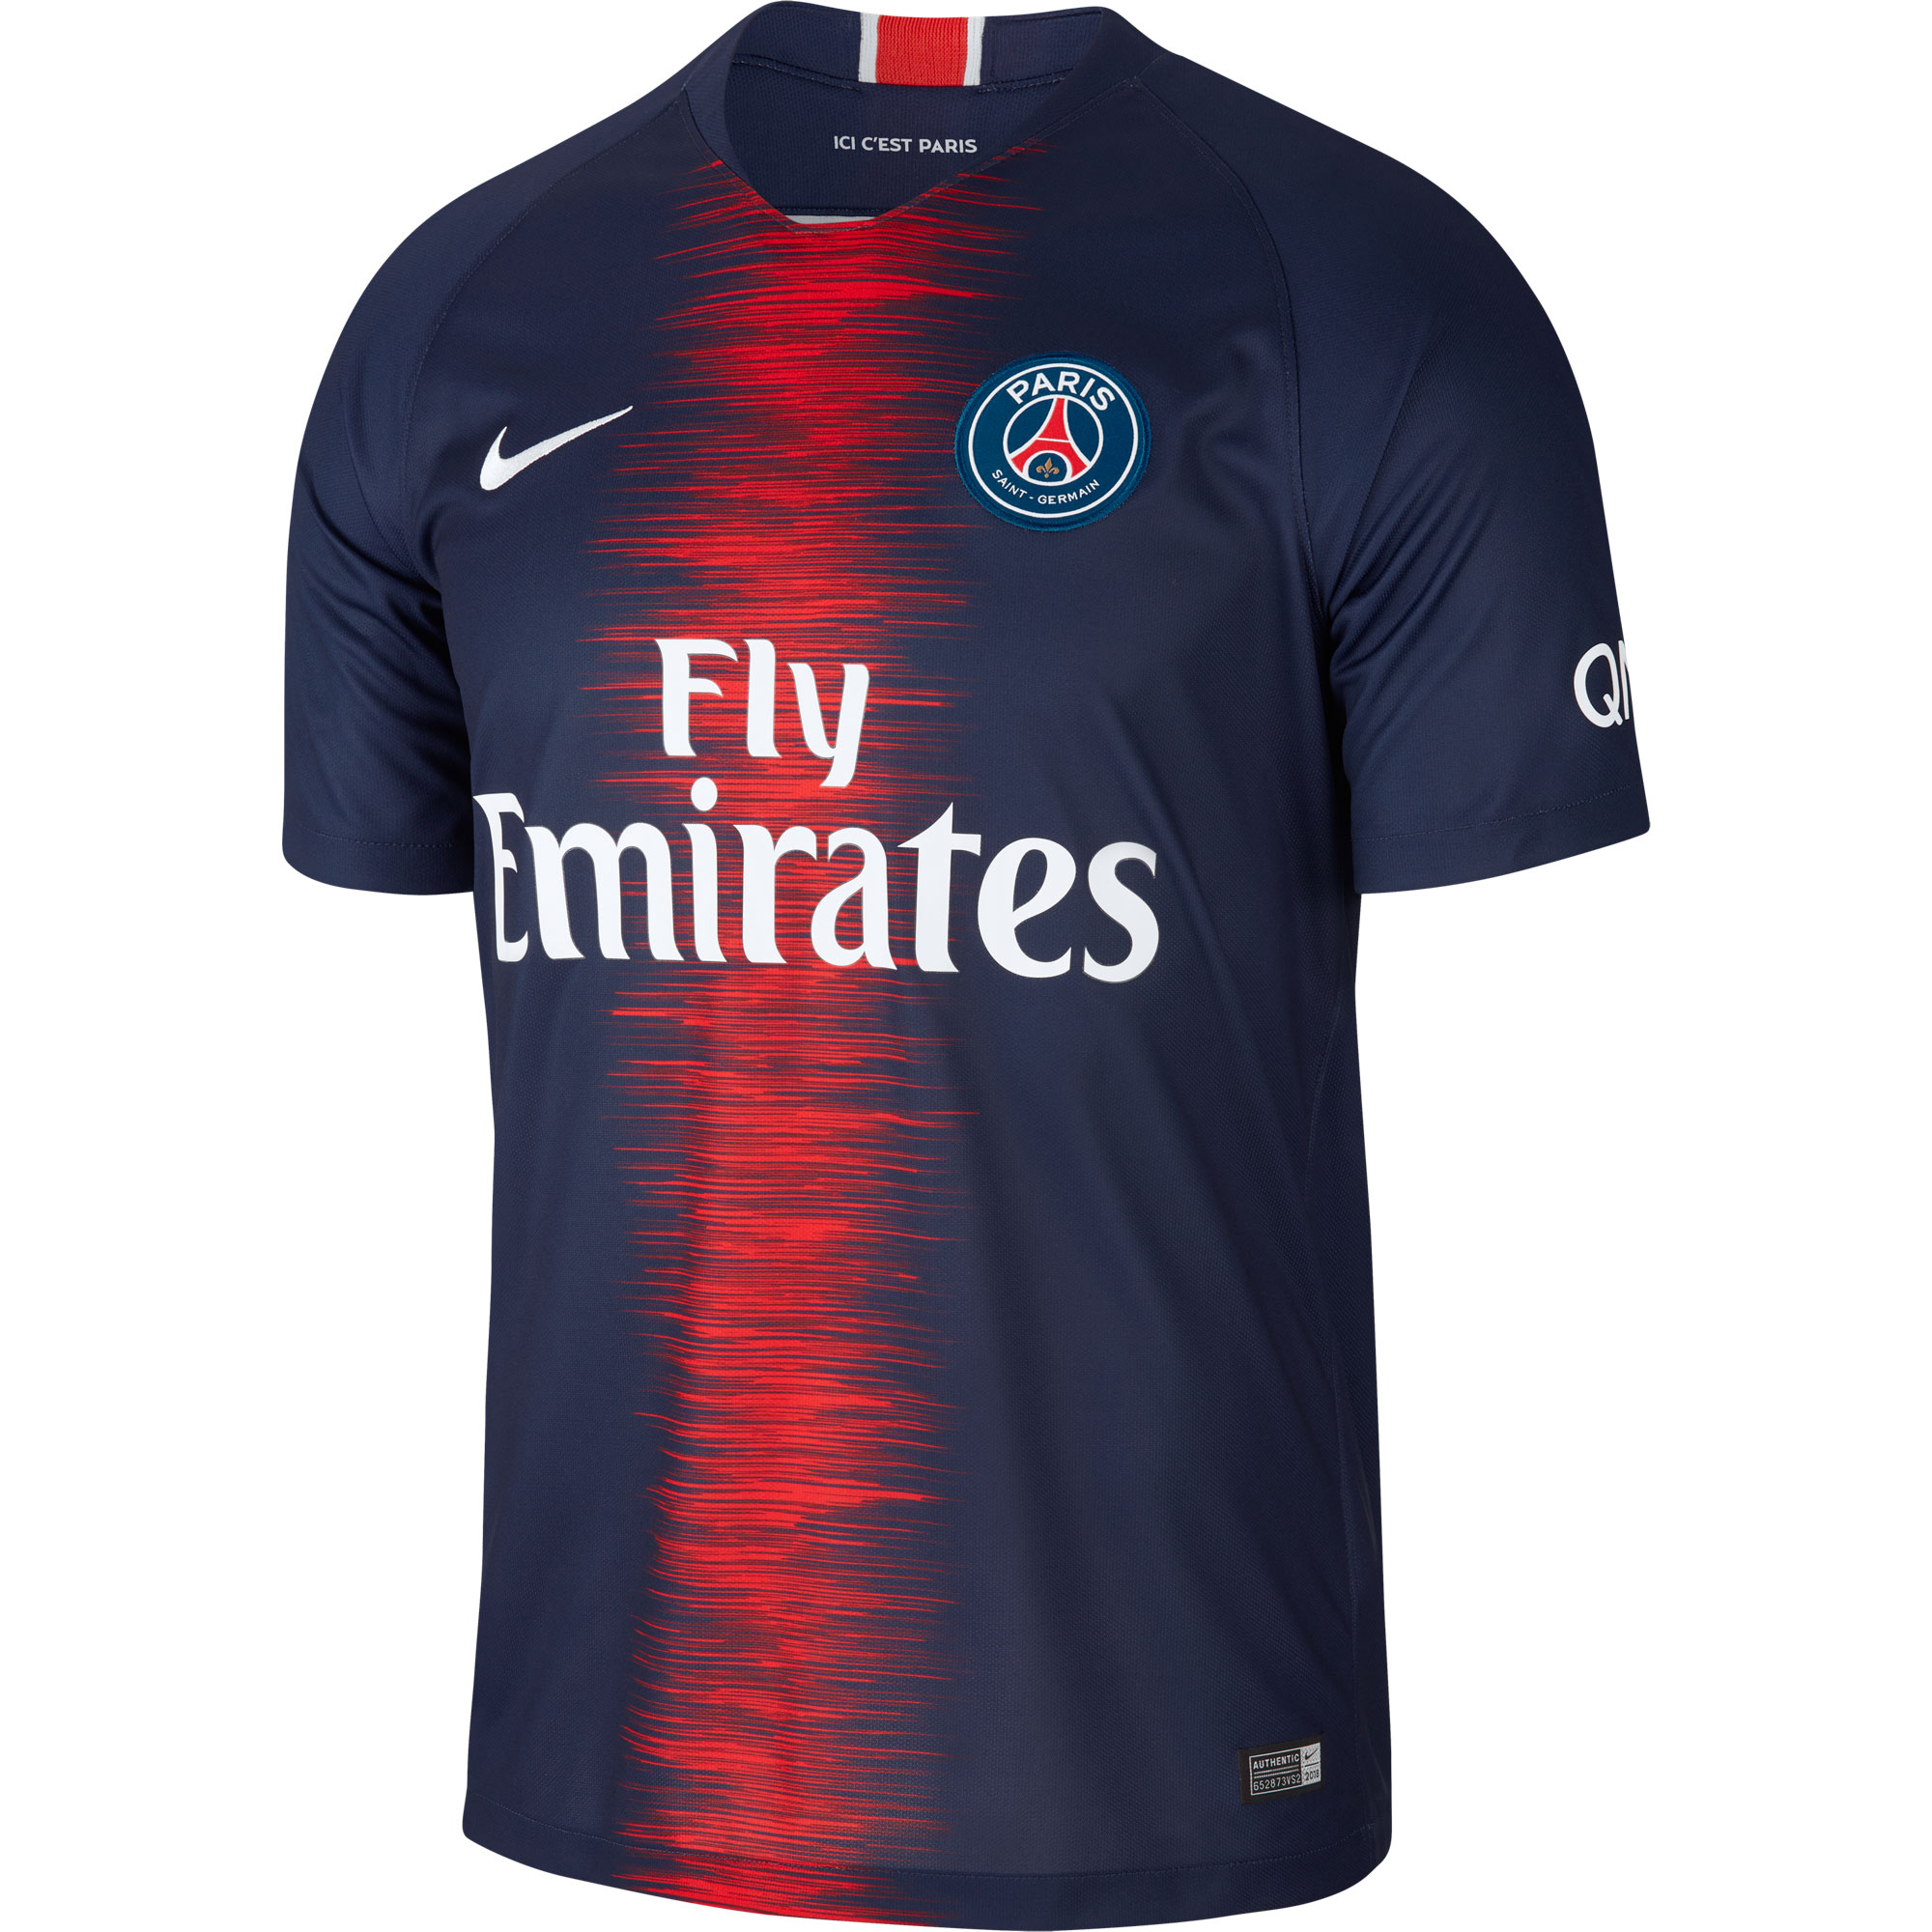 Paris Saint-Germain Home shirt